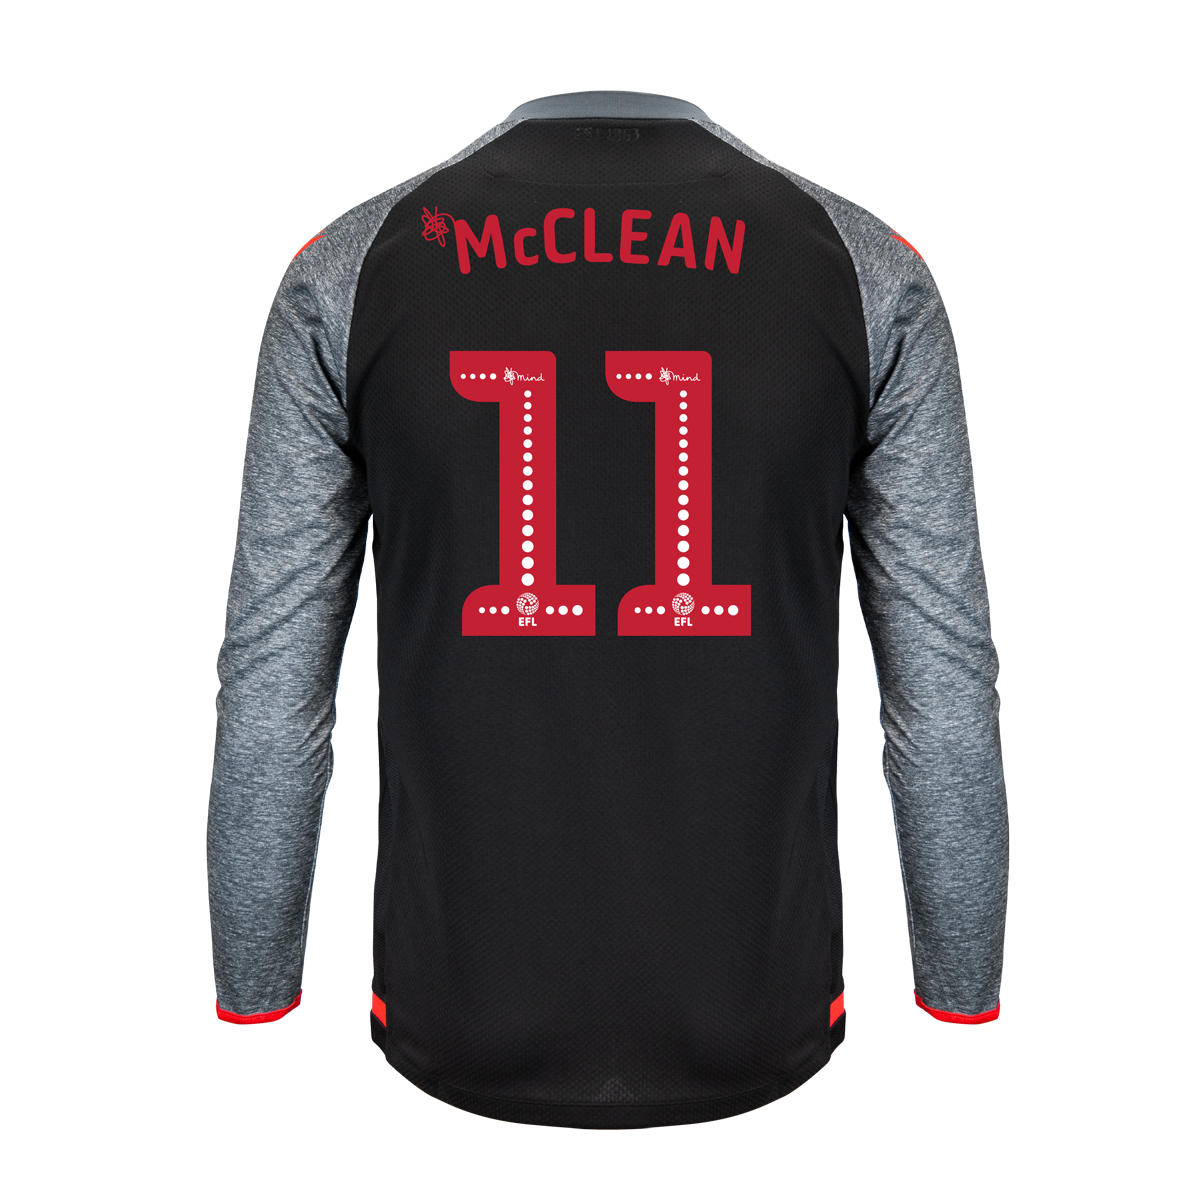 2019/20 Junior Away LS Shirt - McClean